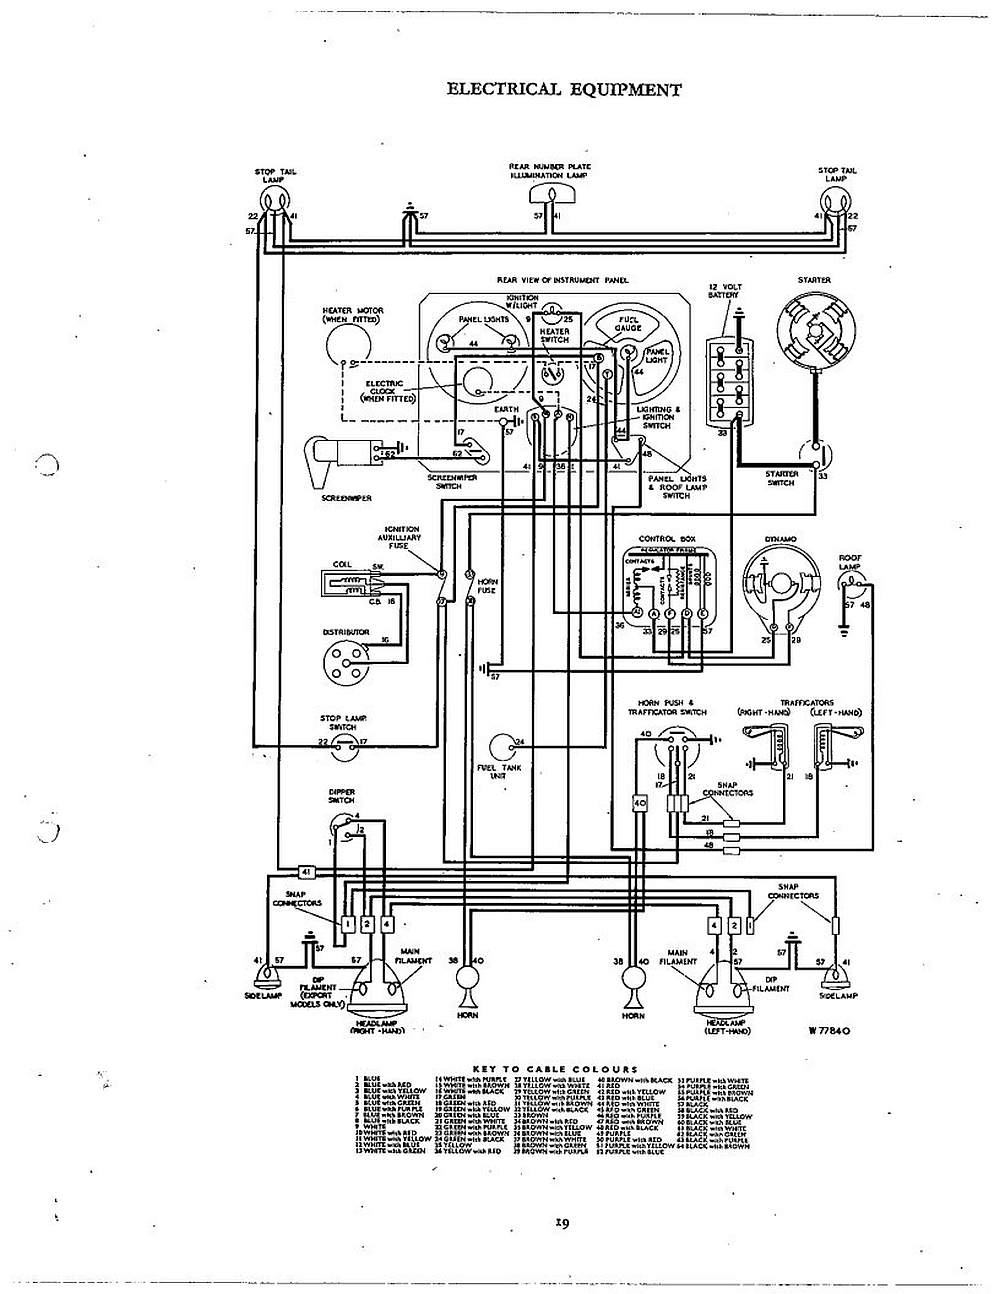 triumph wire diagram official site wiring diagramstriumph tr6 wiring diagram wiring diagramtr250 wiring diagram wiring library triumph